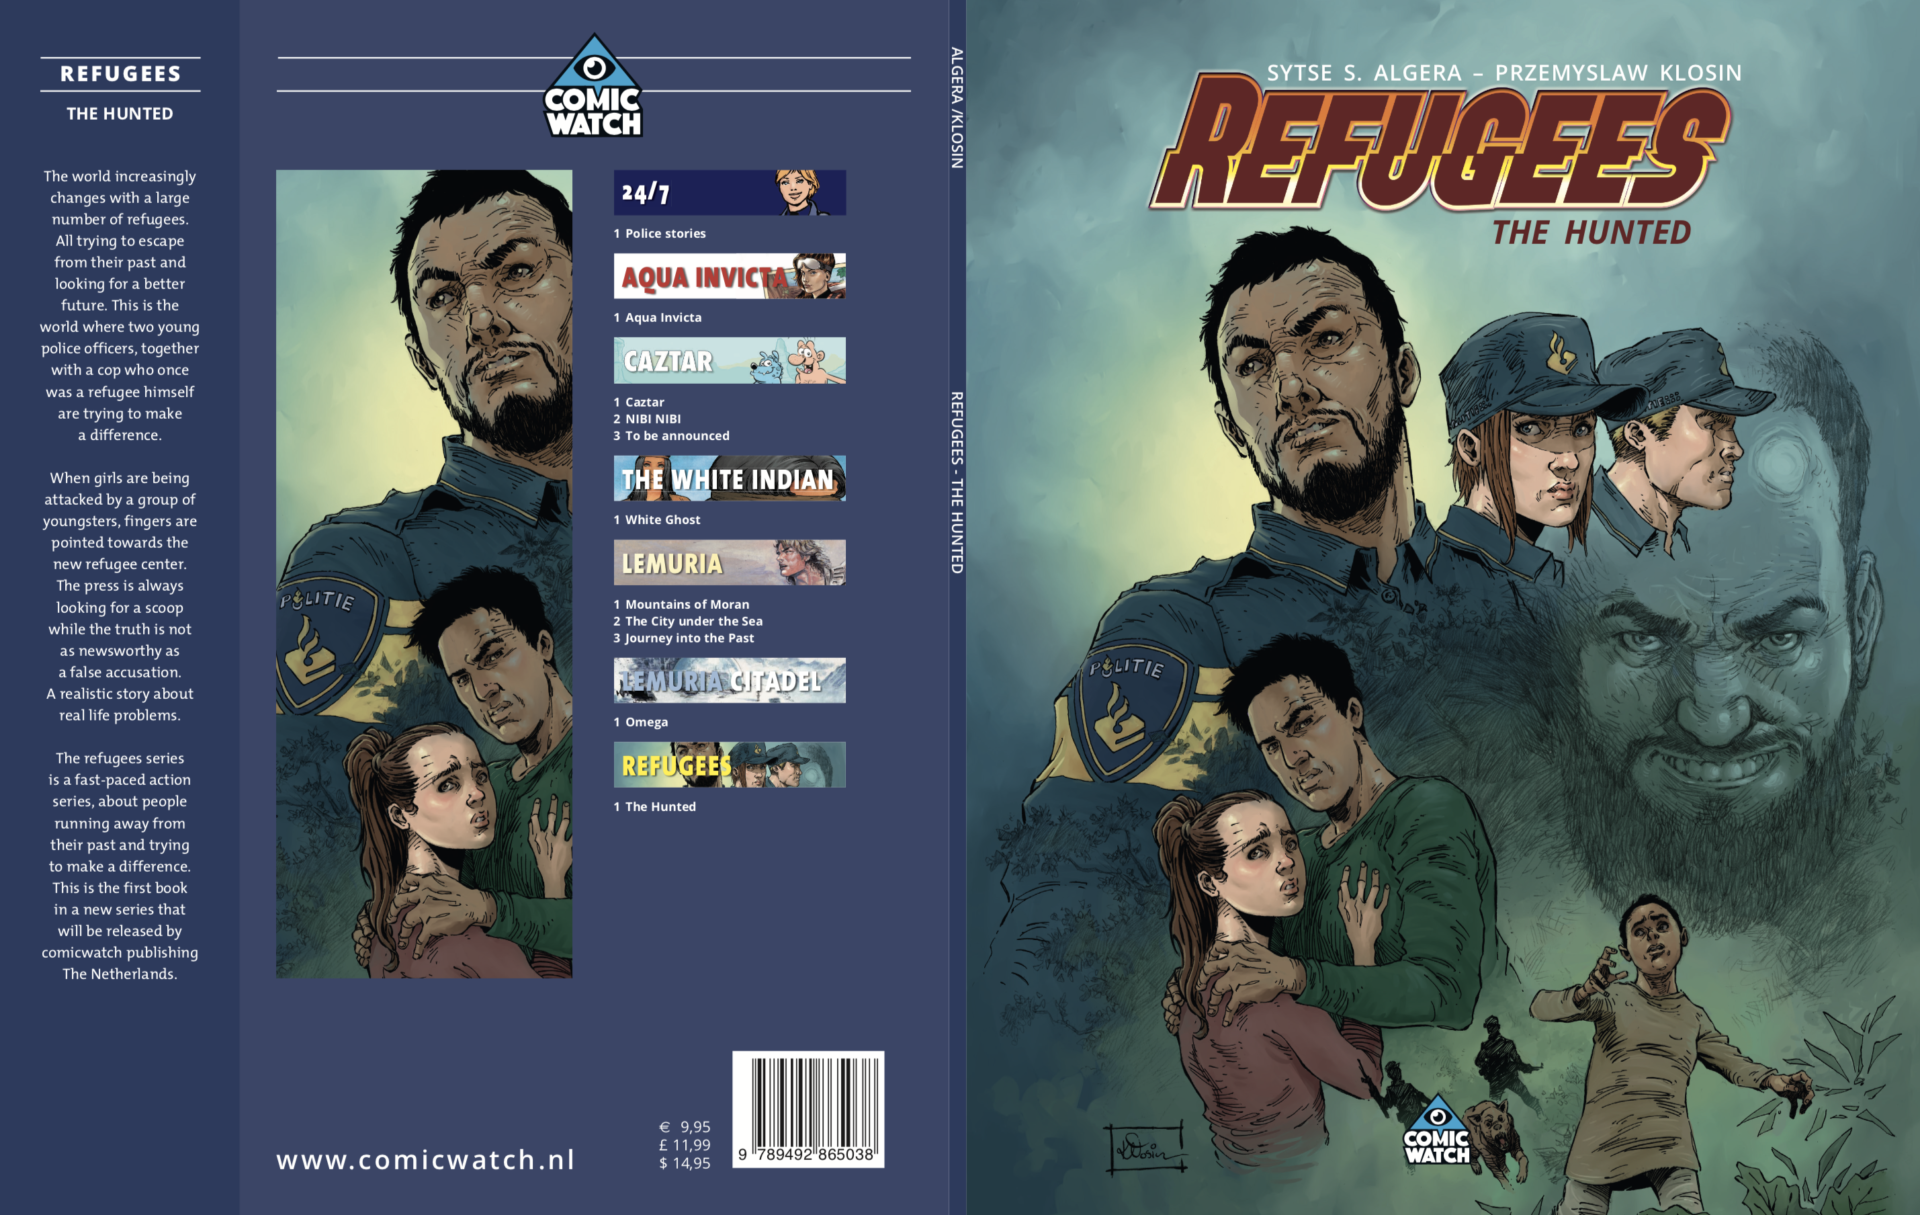 Refugees, a special and very realistic story about refugees in Holland